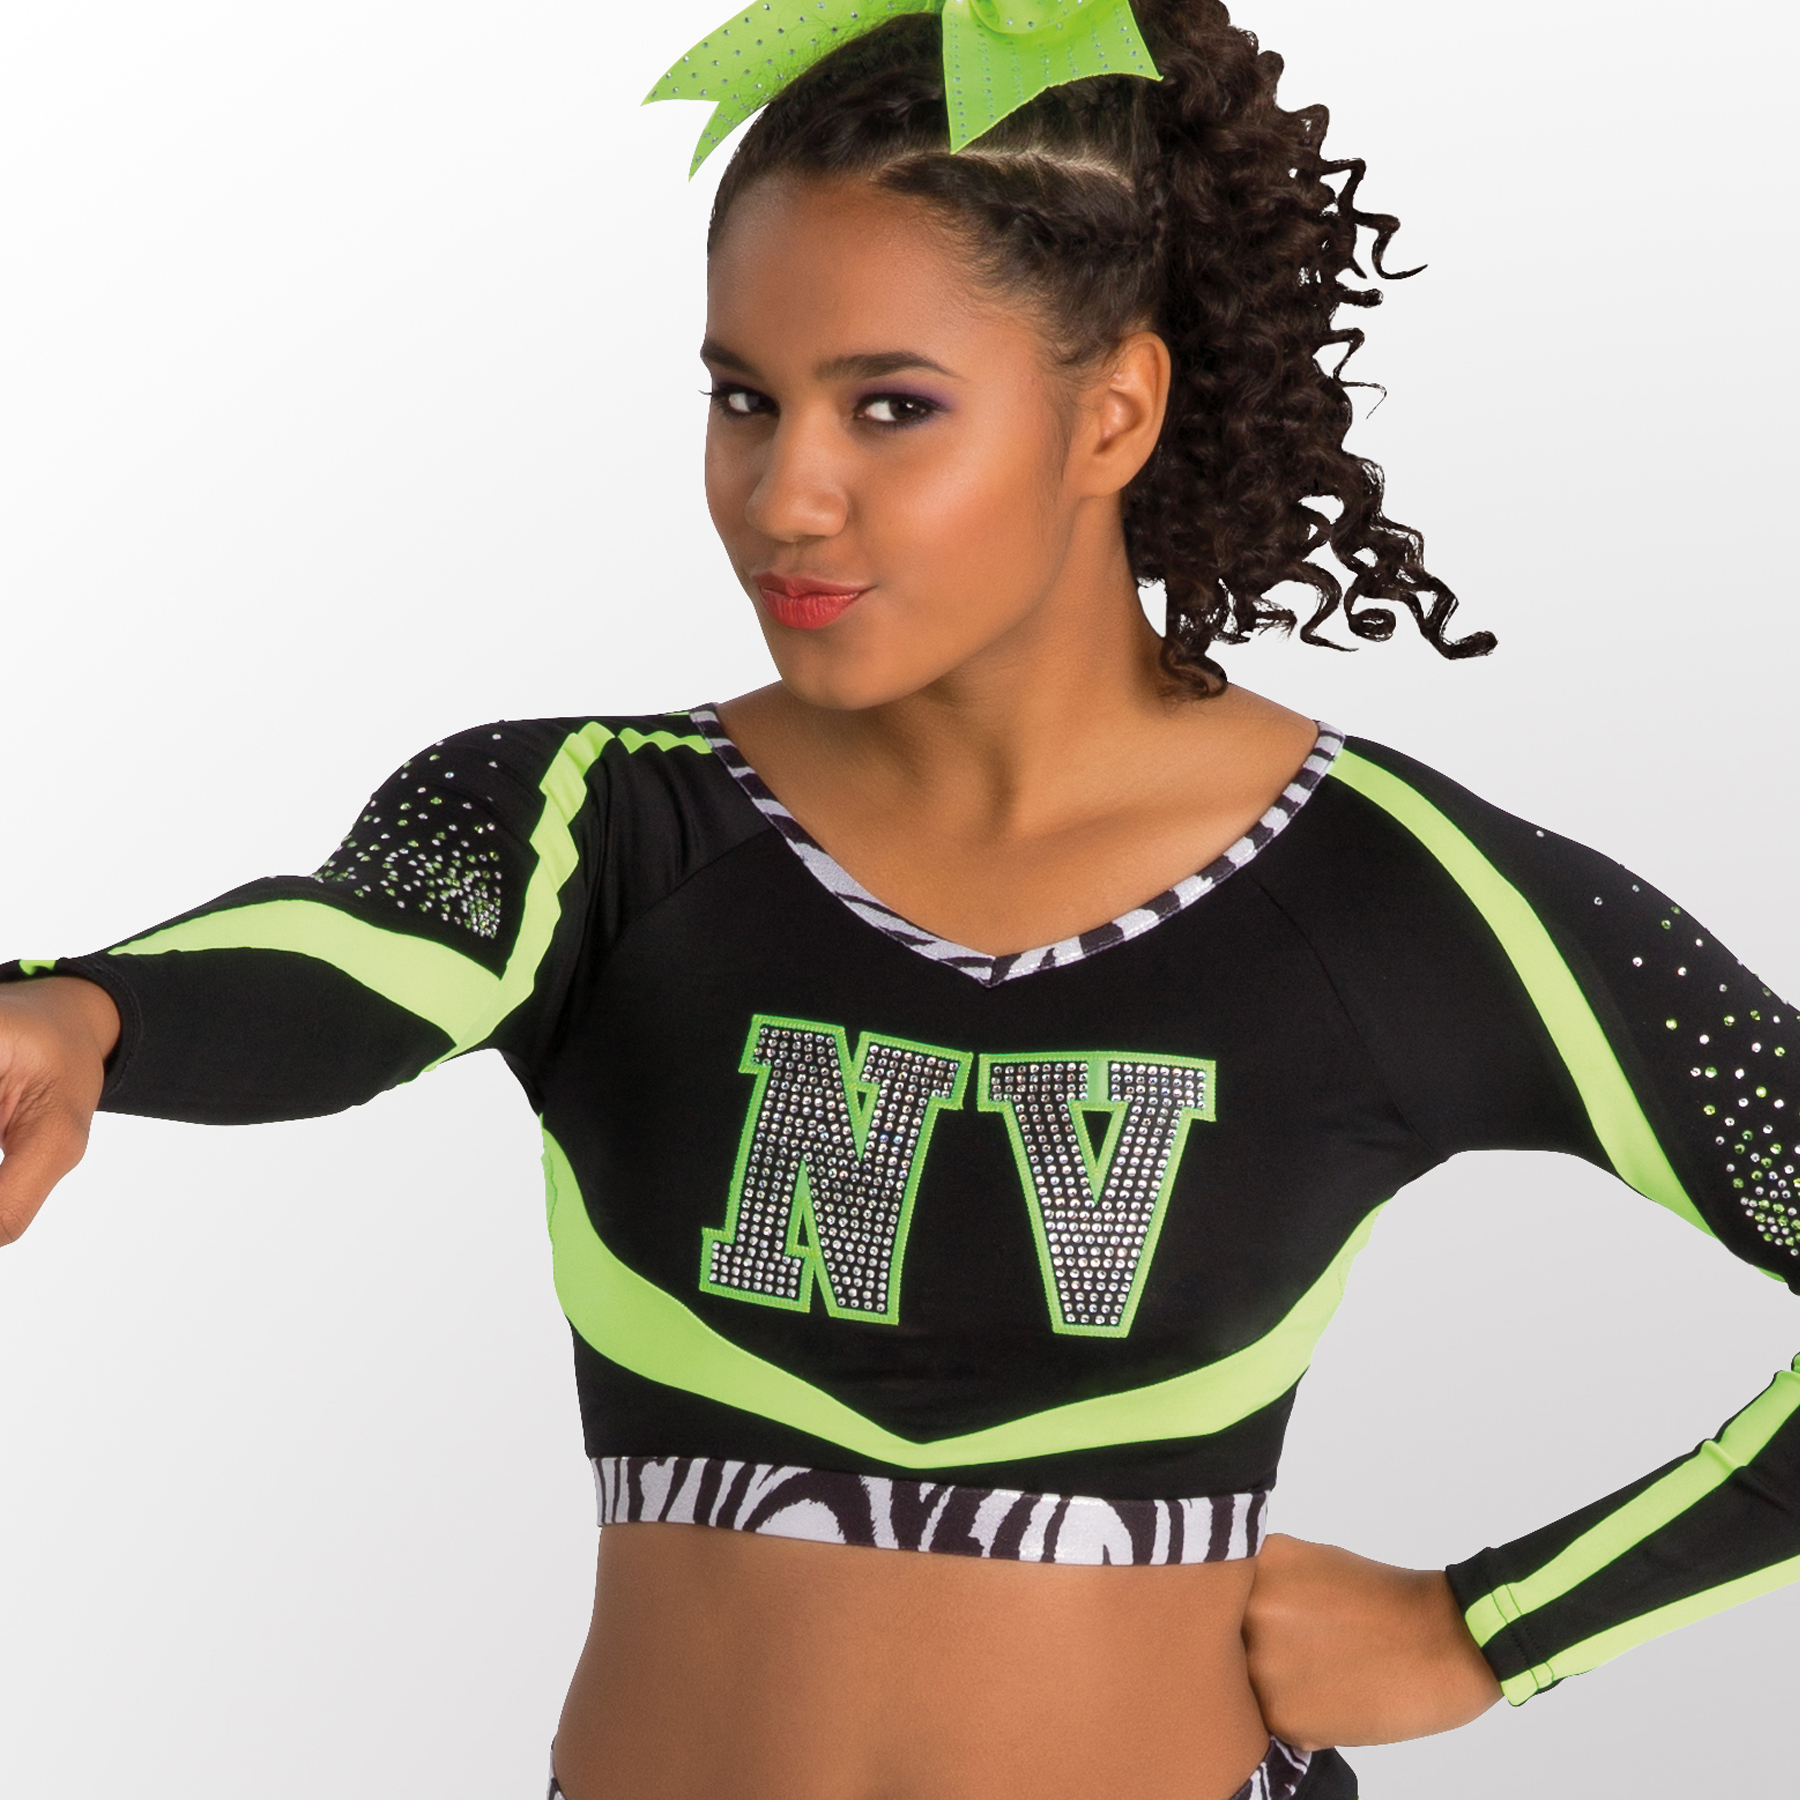 All Star Cheer Uniform.jpg